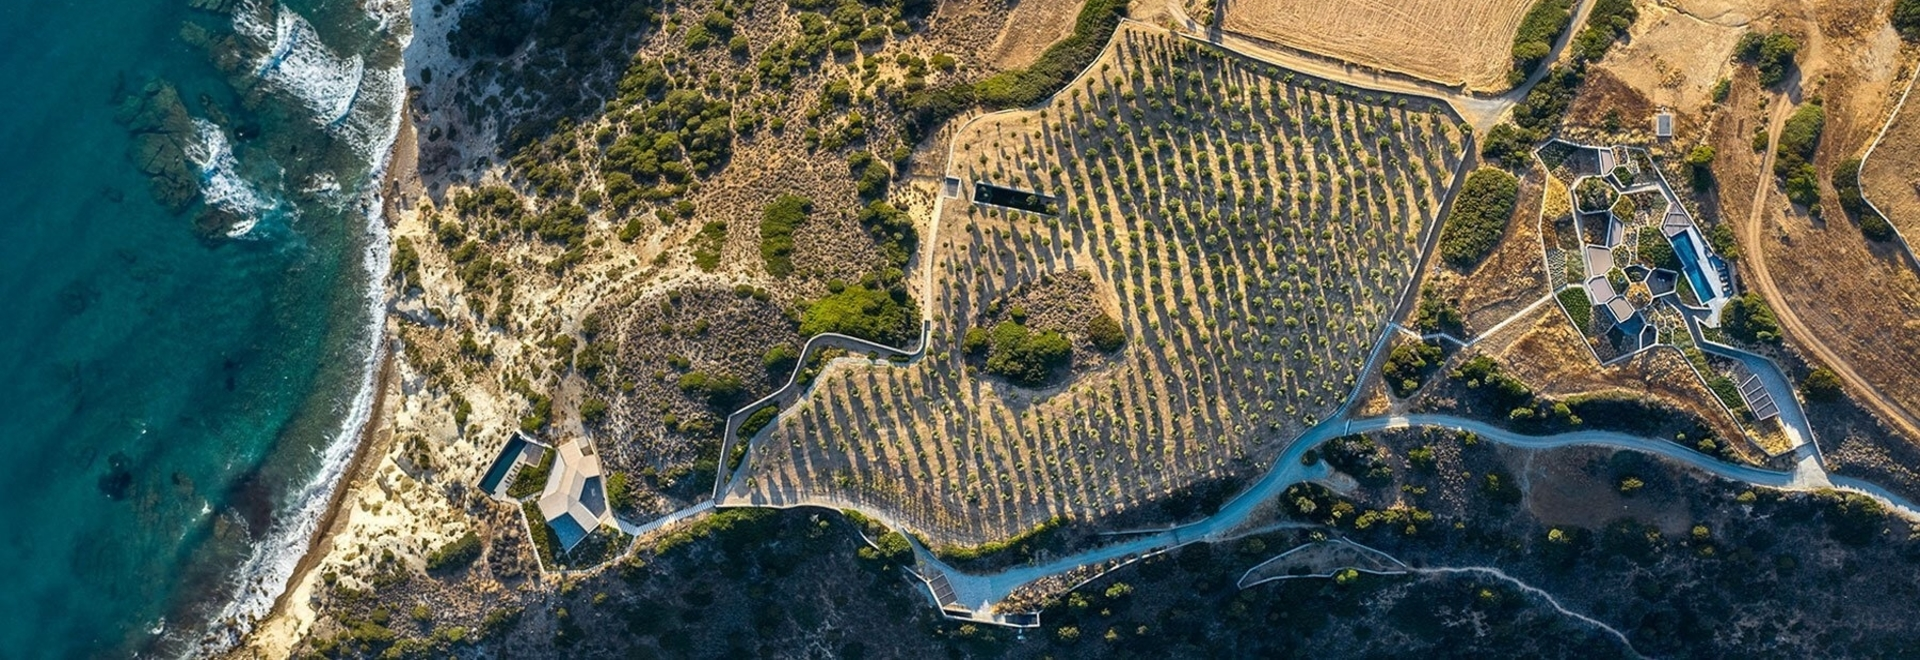 Interview: DECA discusses its landscapes and underground architecture in Greece